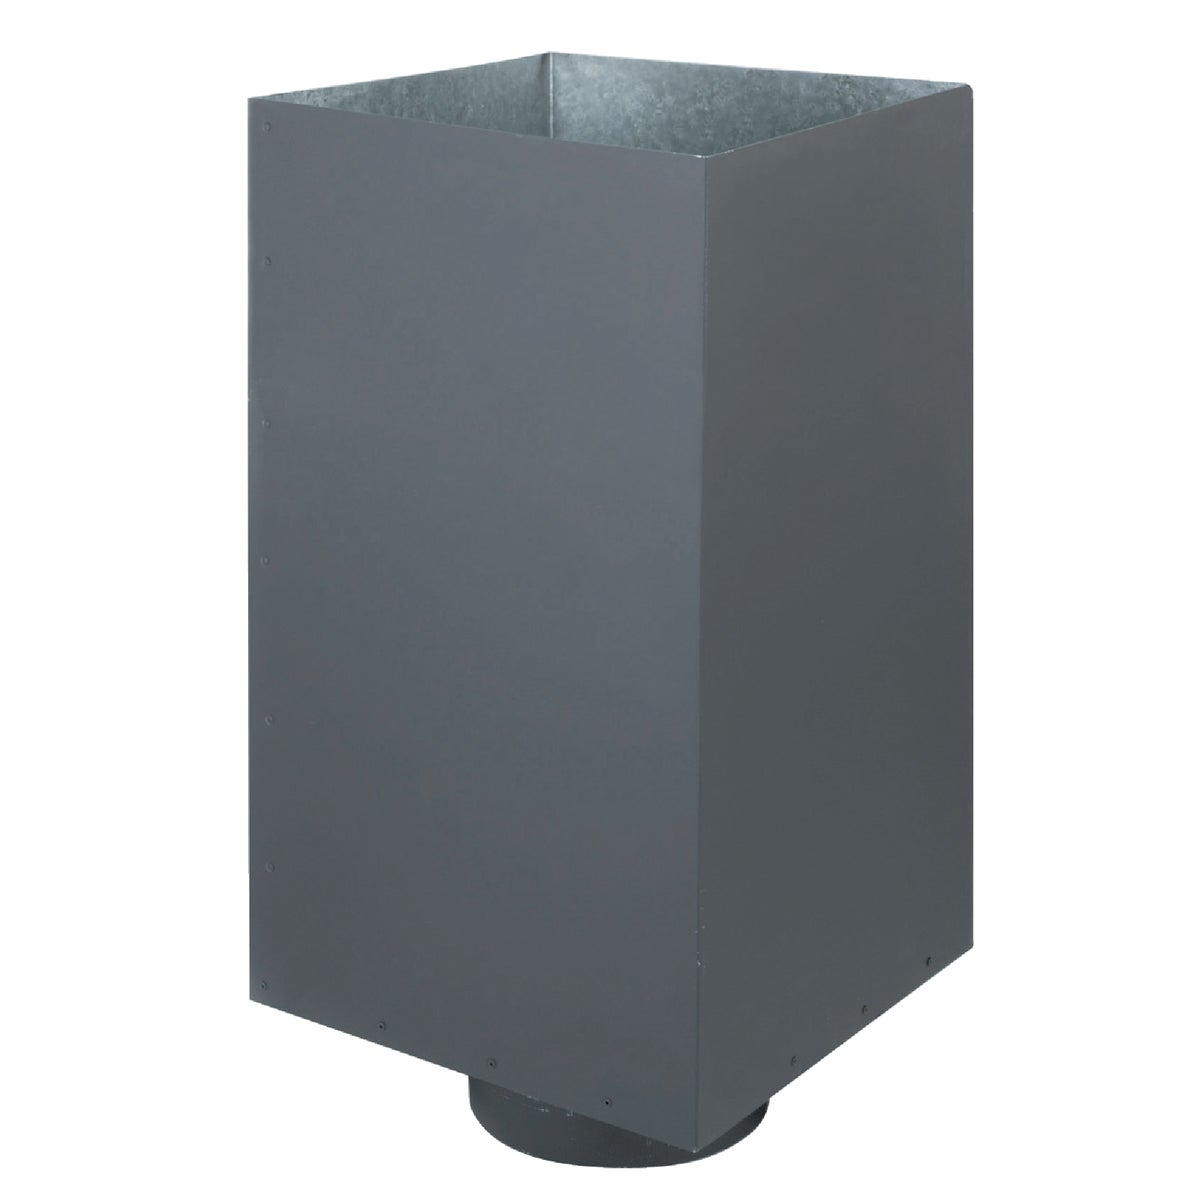 "8"" CHIMNEY BOX SUPPORT - 8T-SB by Selkirk Corporation"